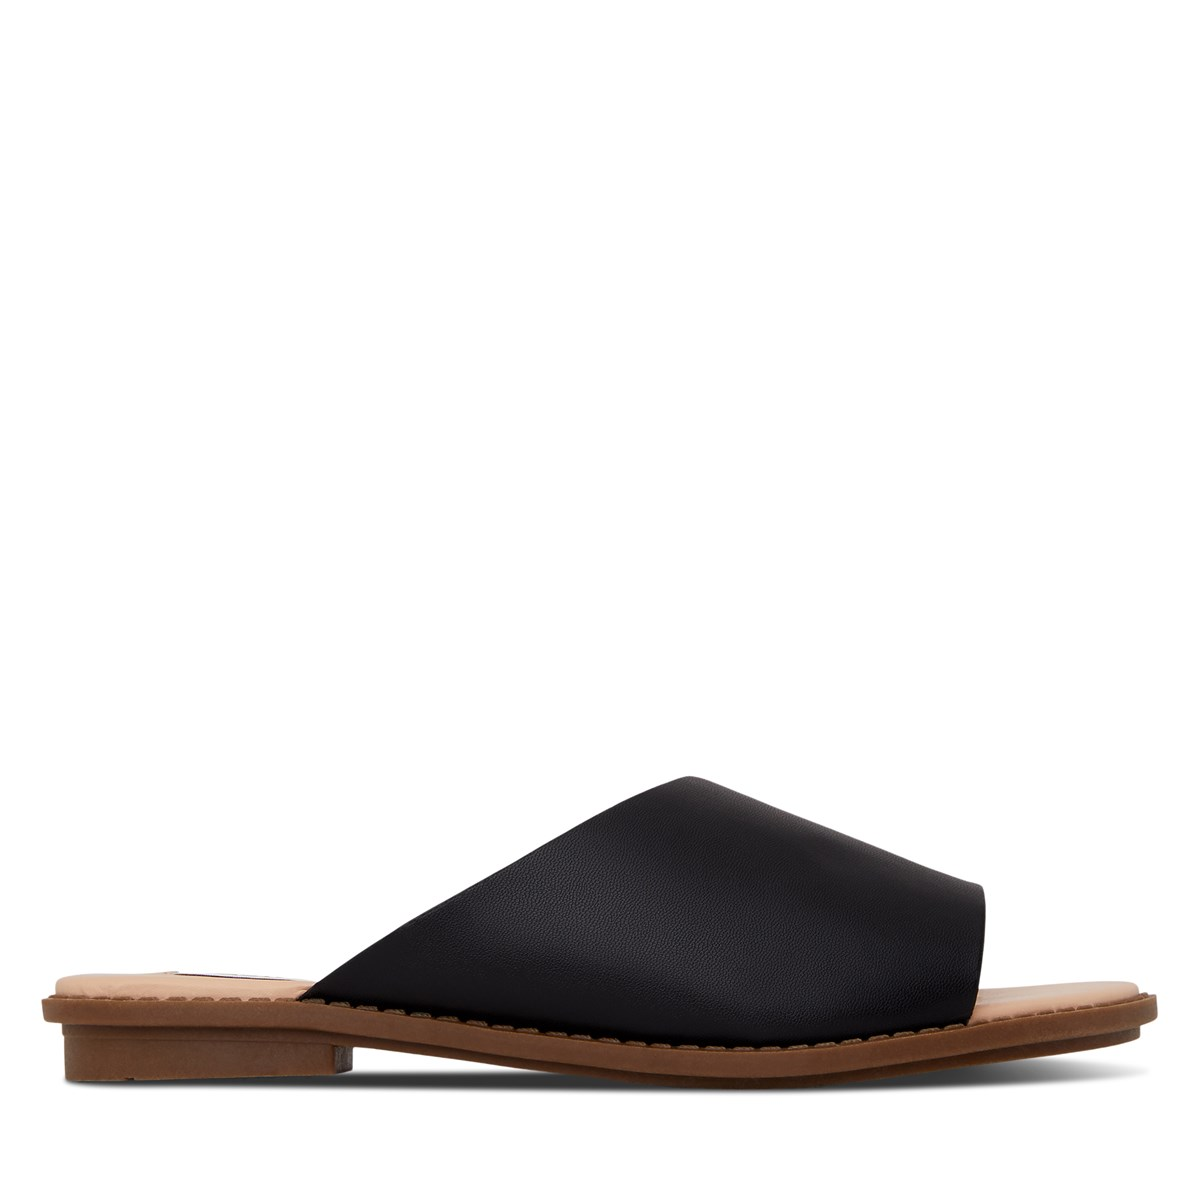 Women's Lunna Sandals in Black